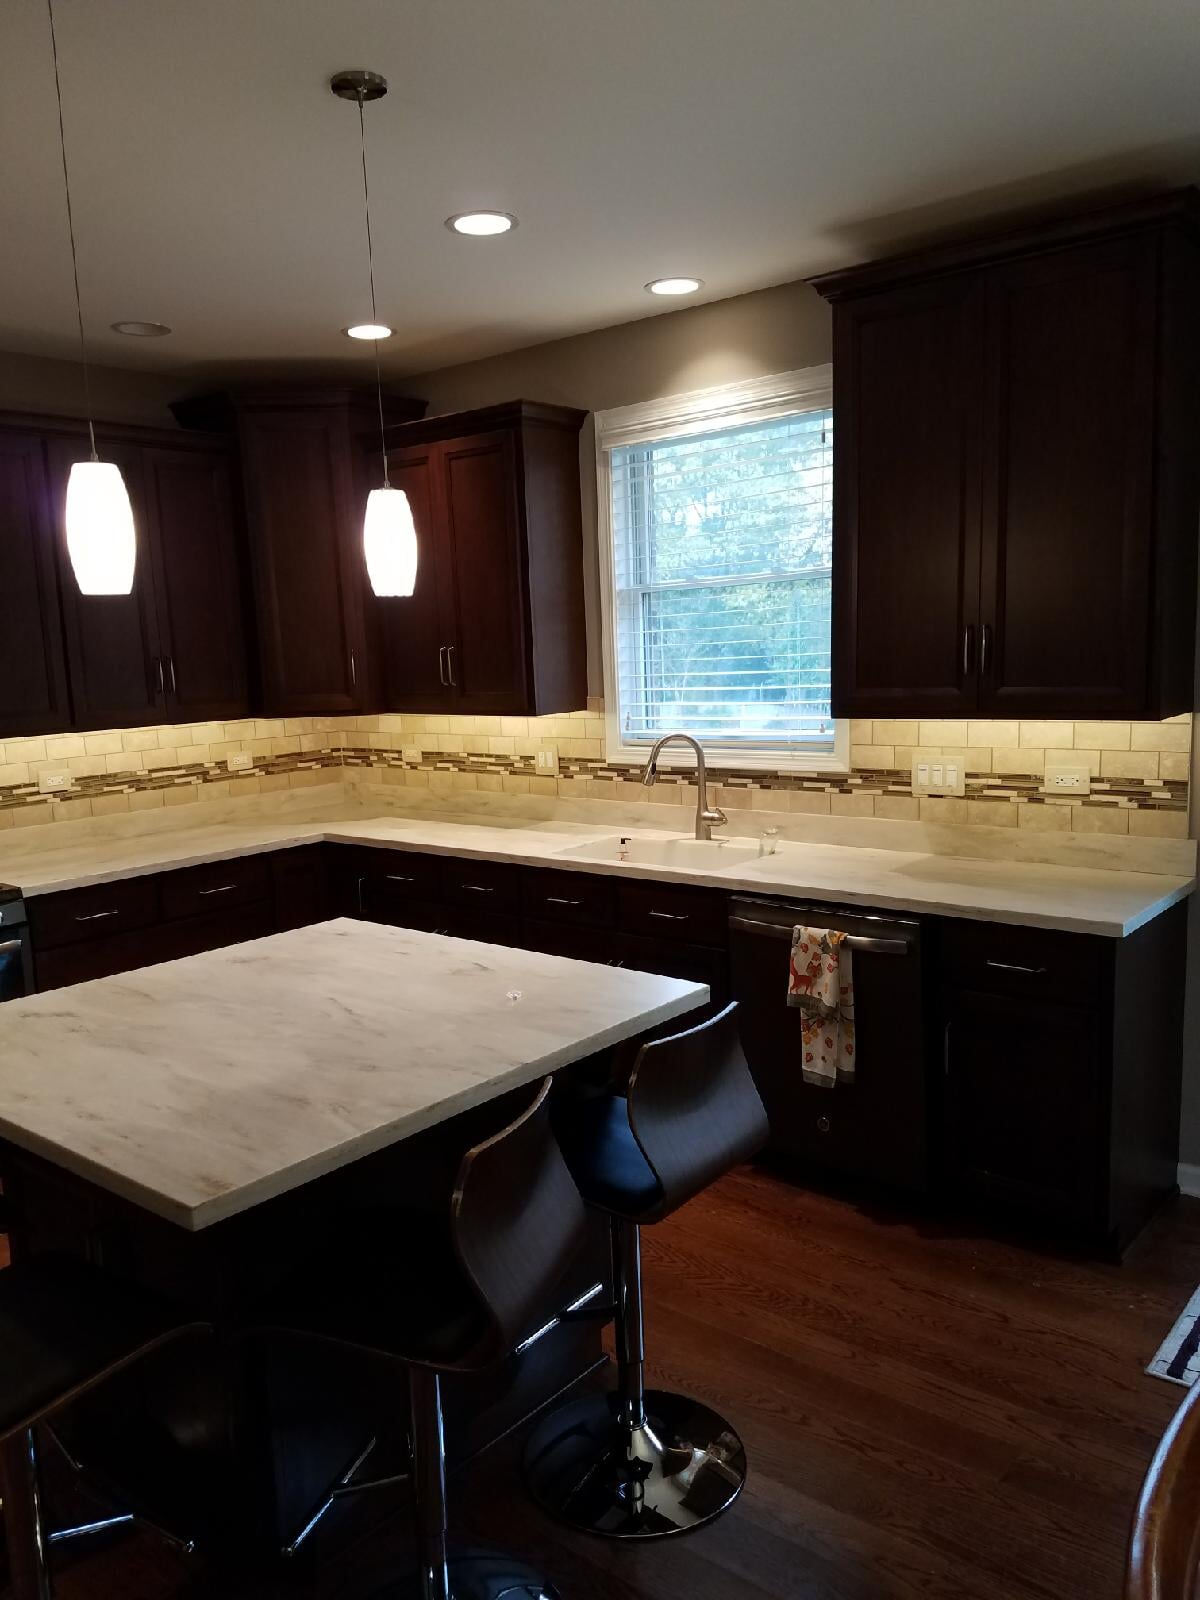 Gorgeous backsplash and countertops in Lockport, IL from Marchio Tile & Carpet Inc.